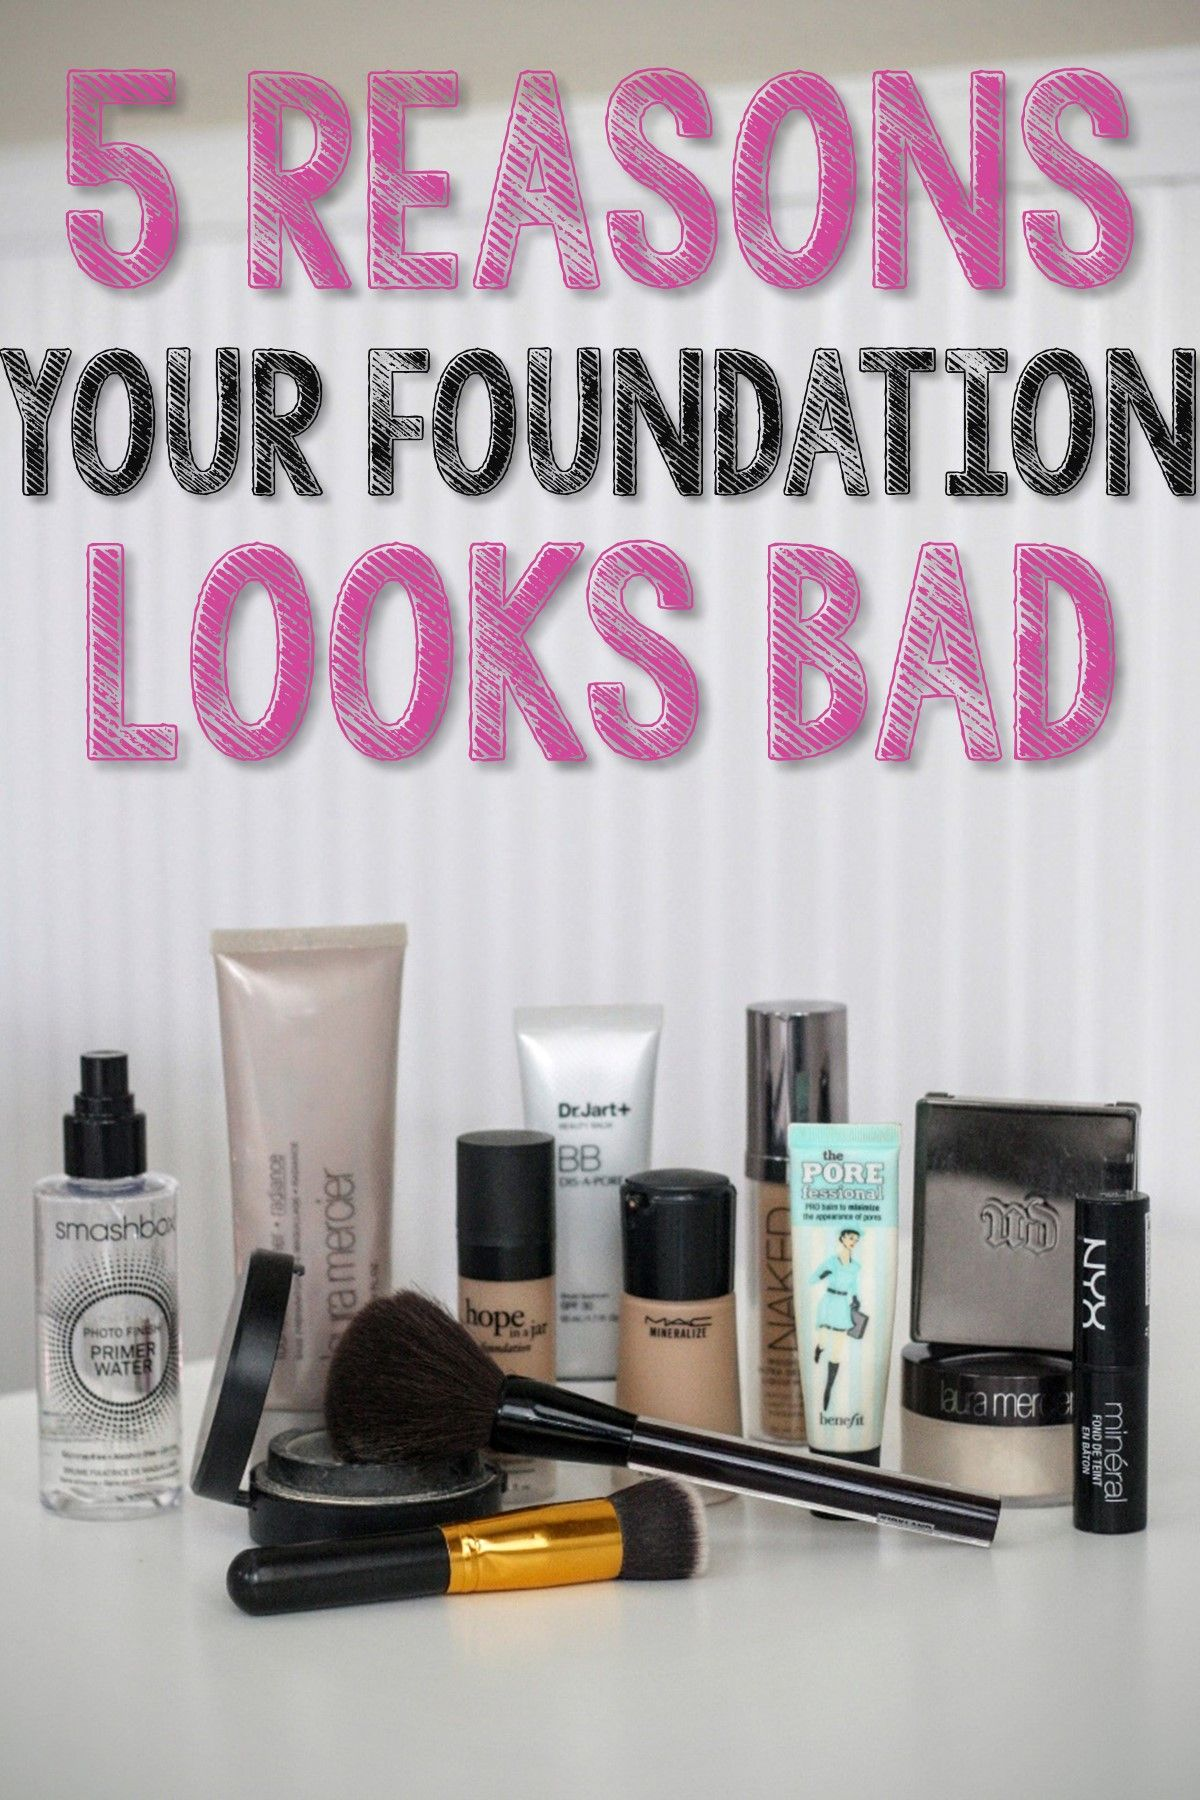 5 Reasons Your Foundation Looks Bad Makeup skin care